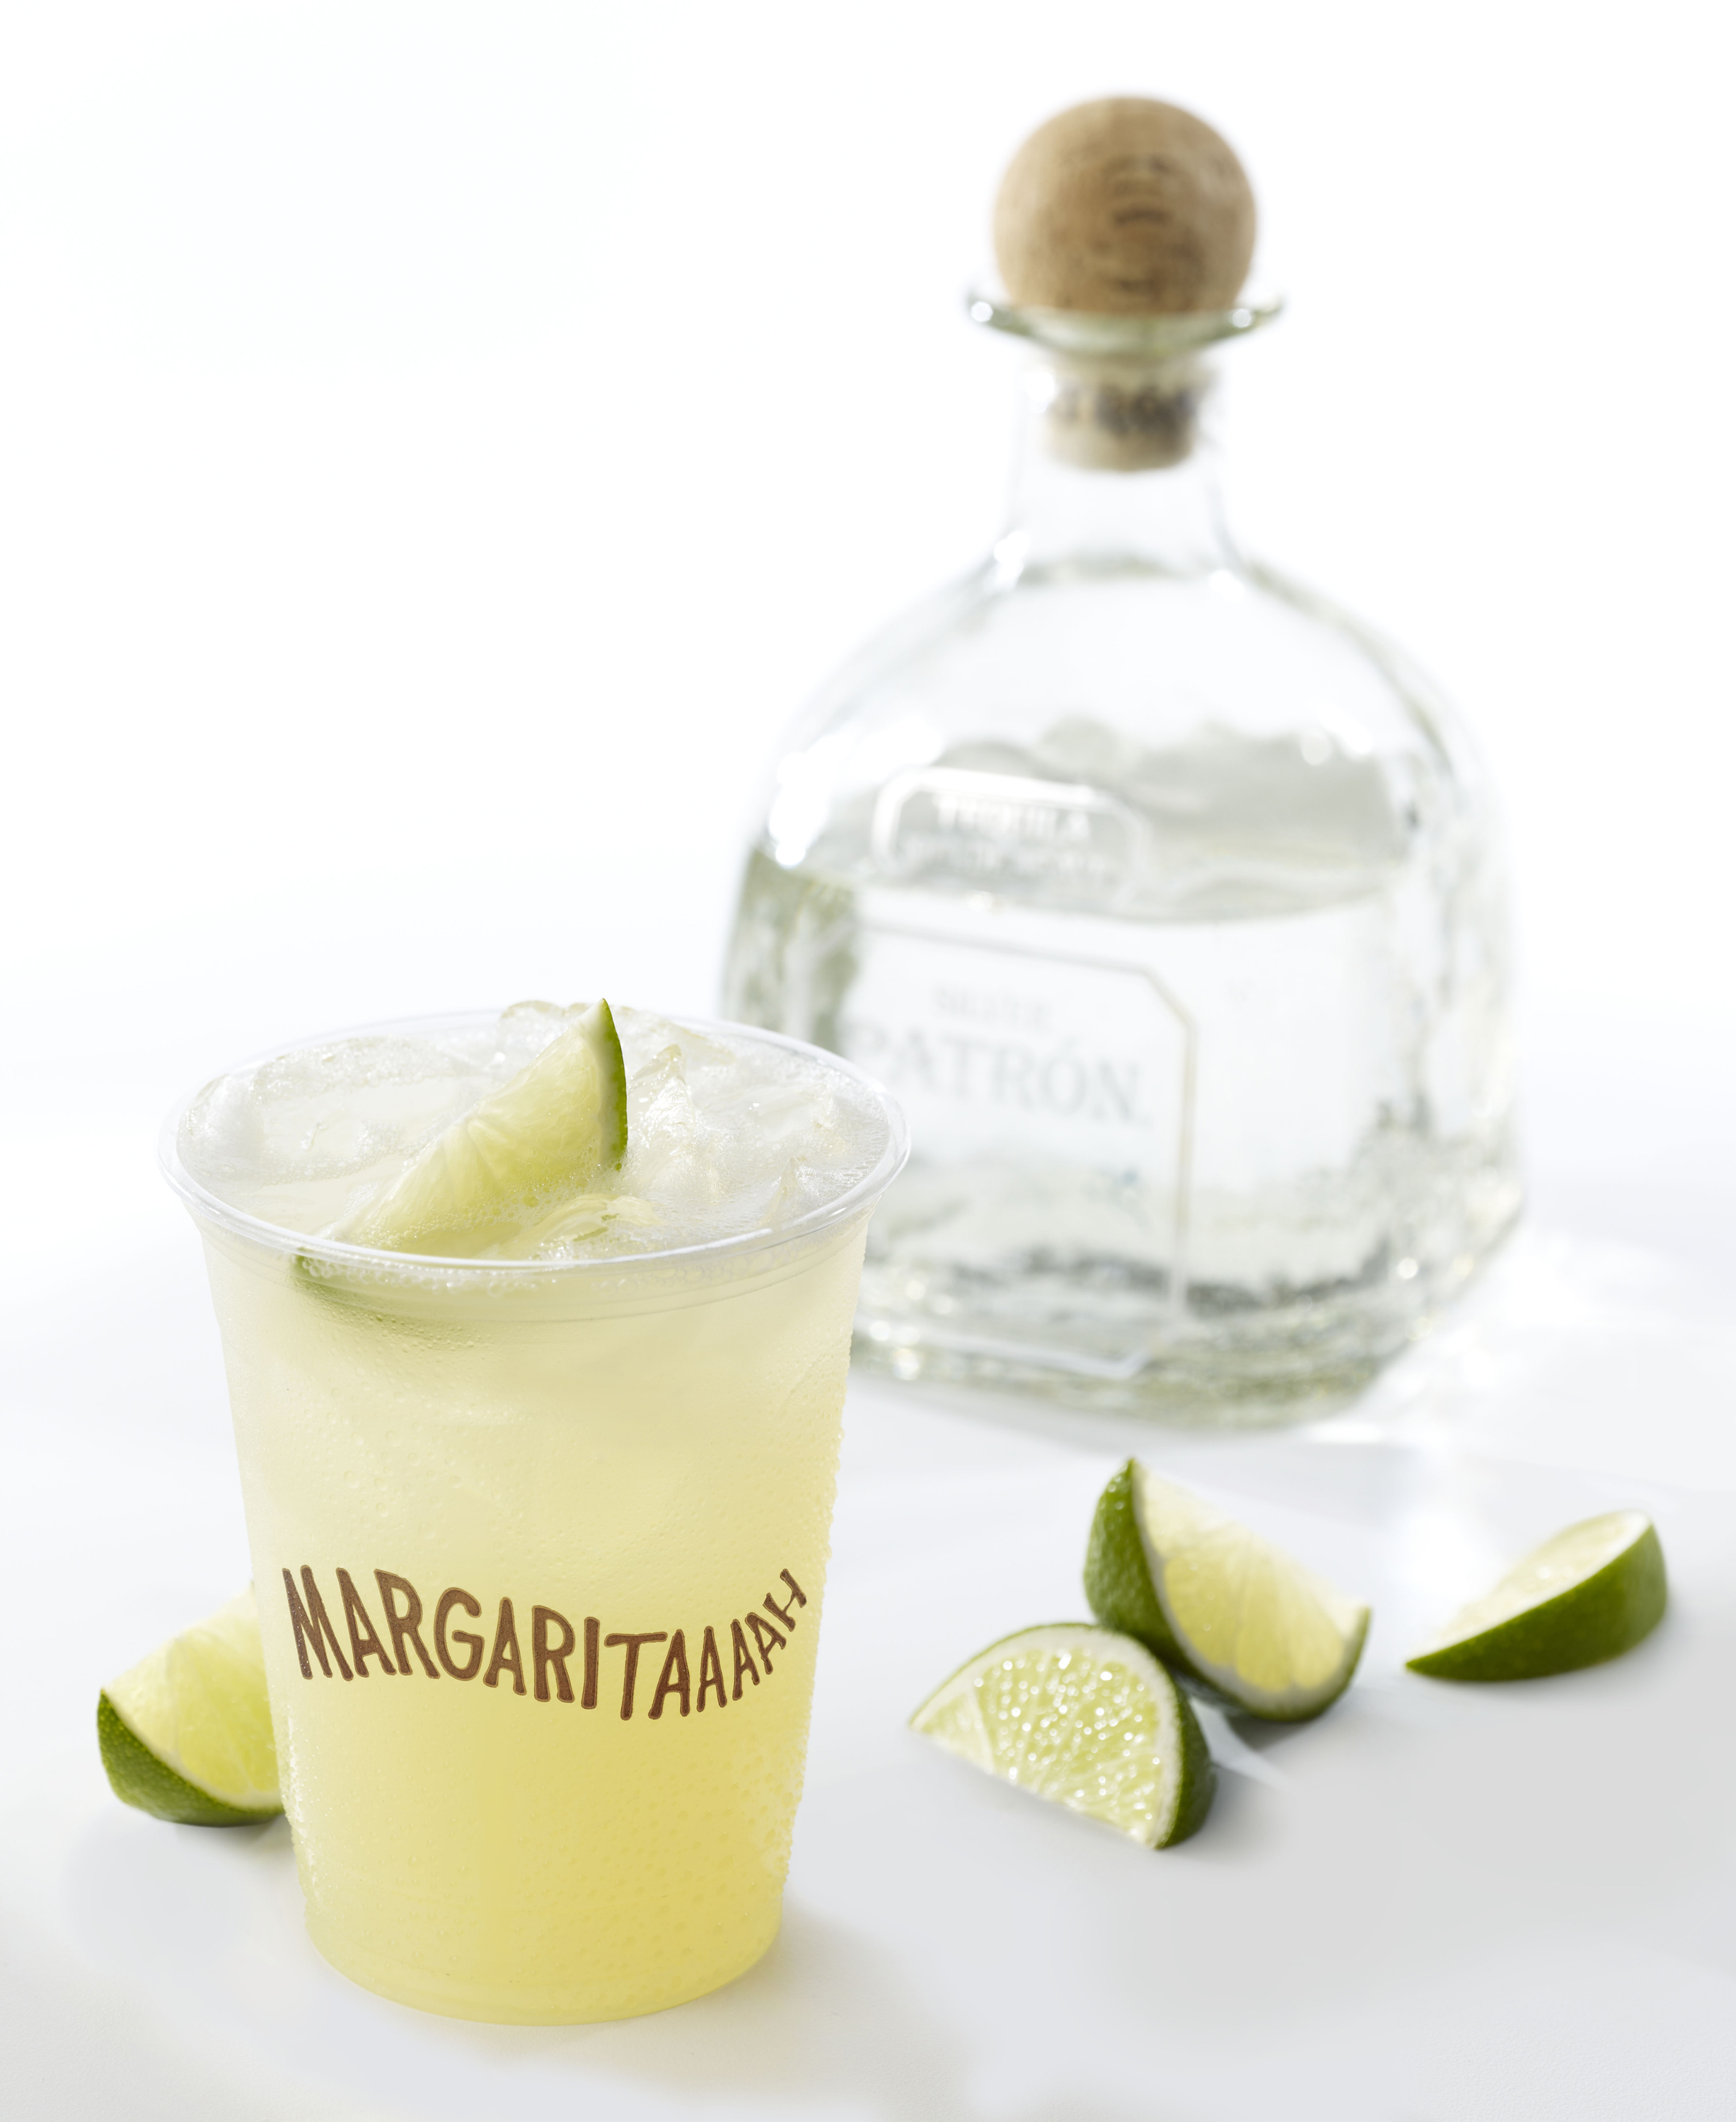 Chipotle's new Patron margarita (Photo: Business Wire)